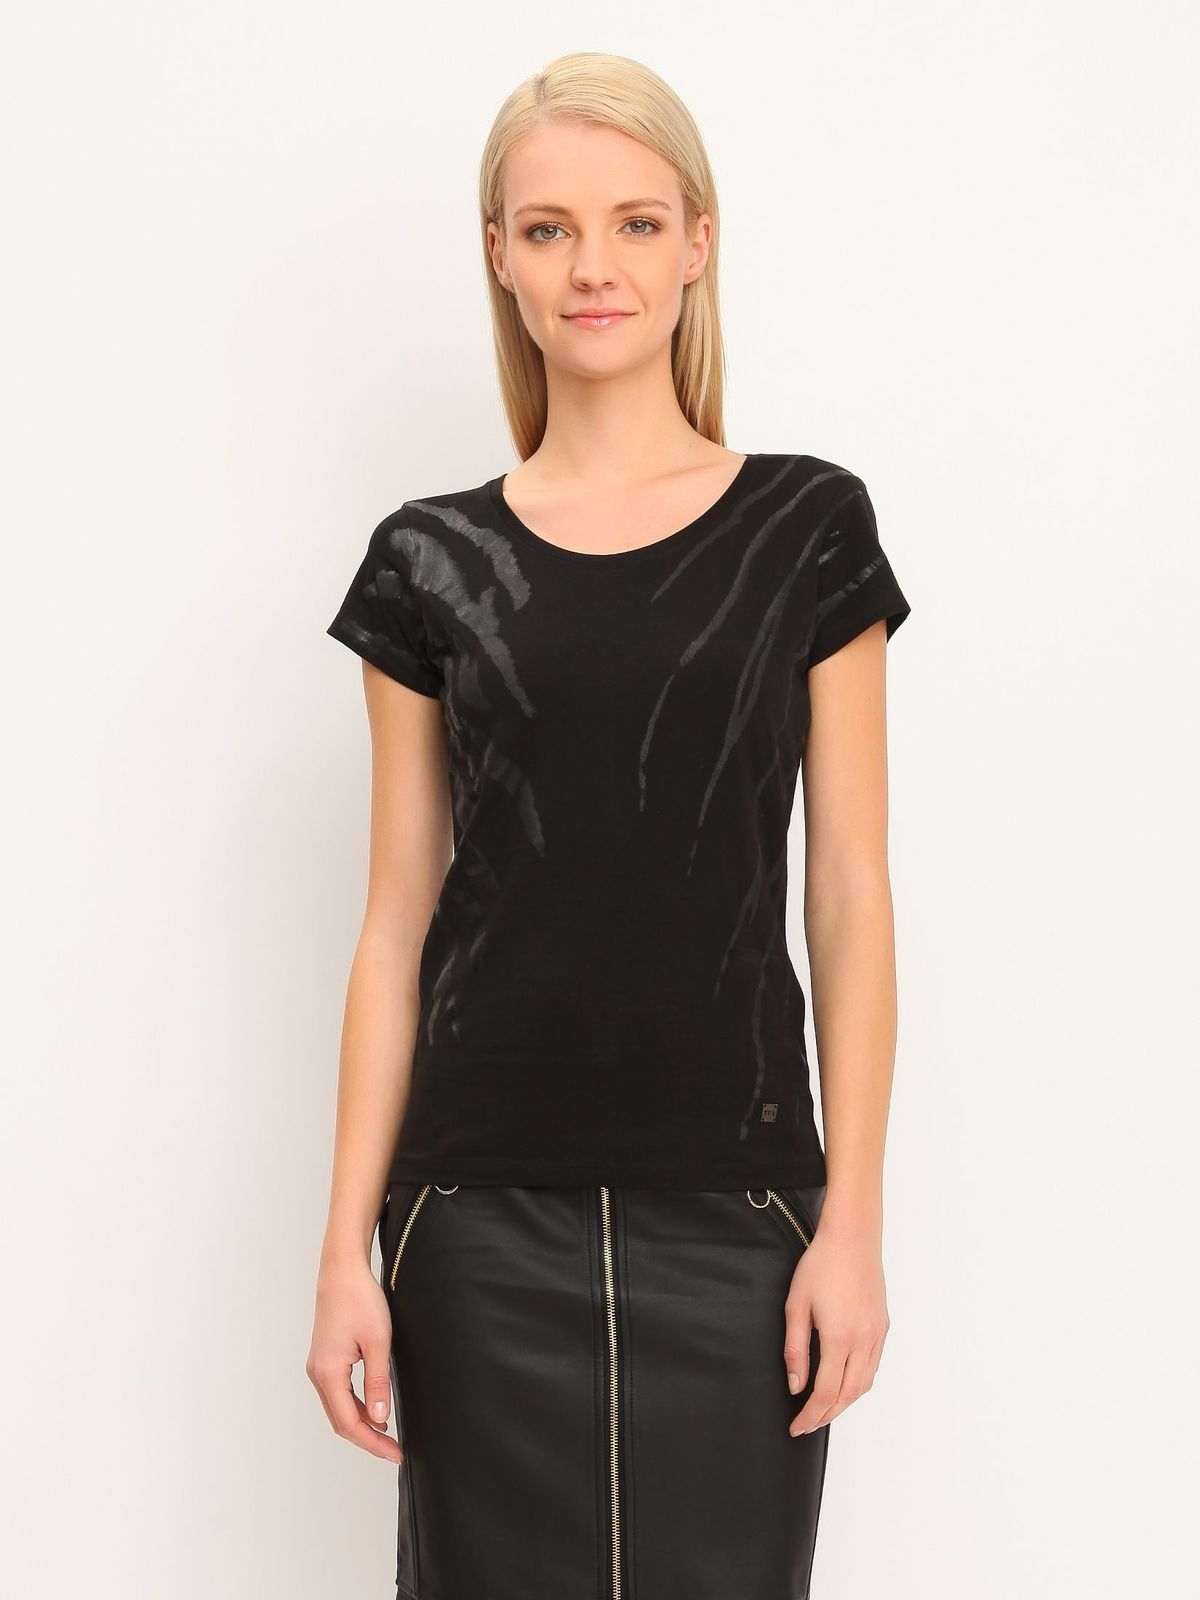 ae9598956718c Black T Shirt Dress With Leather Sleeves - BCD Tofu House